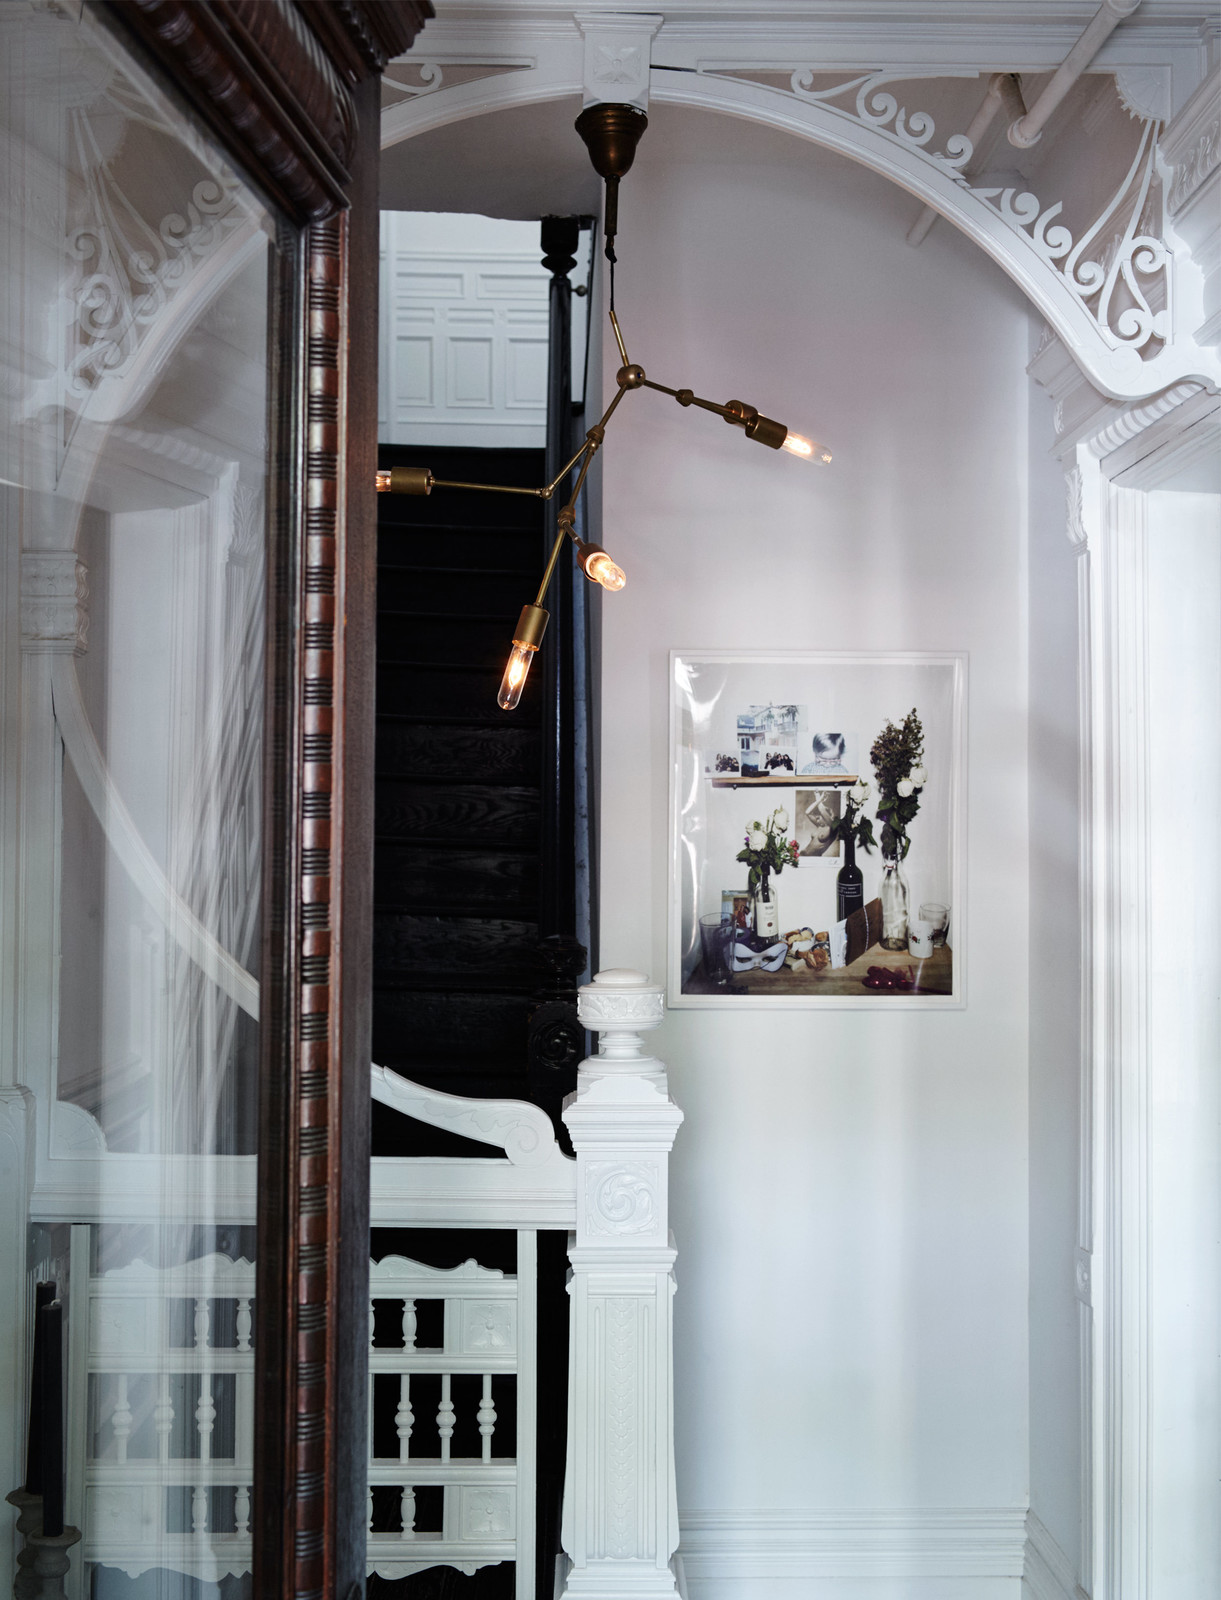 White Iron Frame Doorway with Brass Ceiling Light in Brooklyn